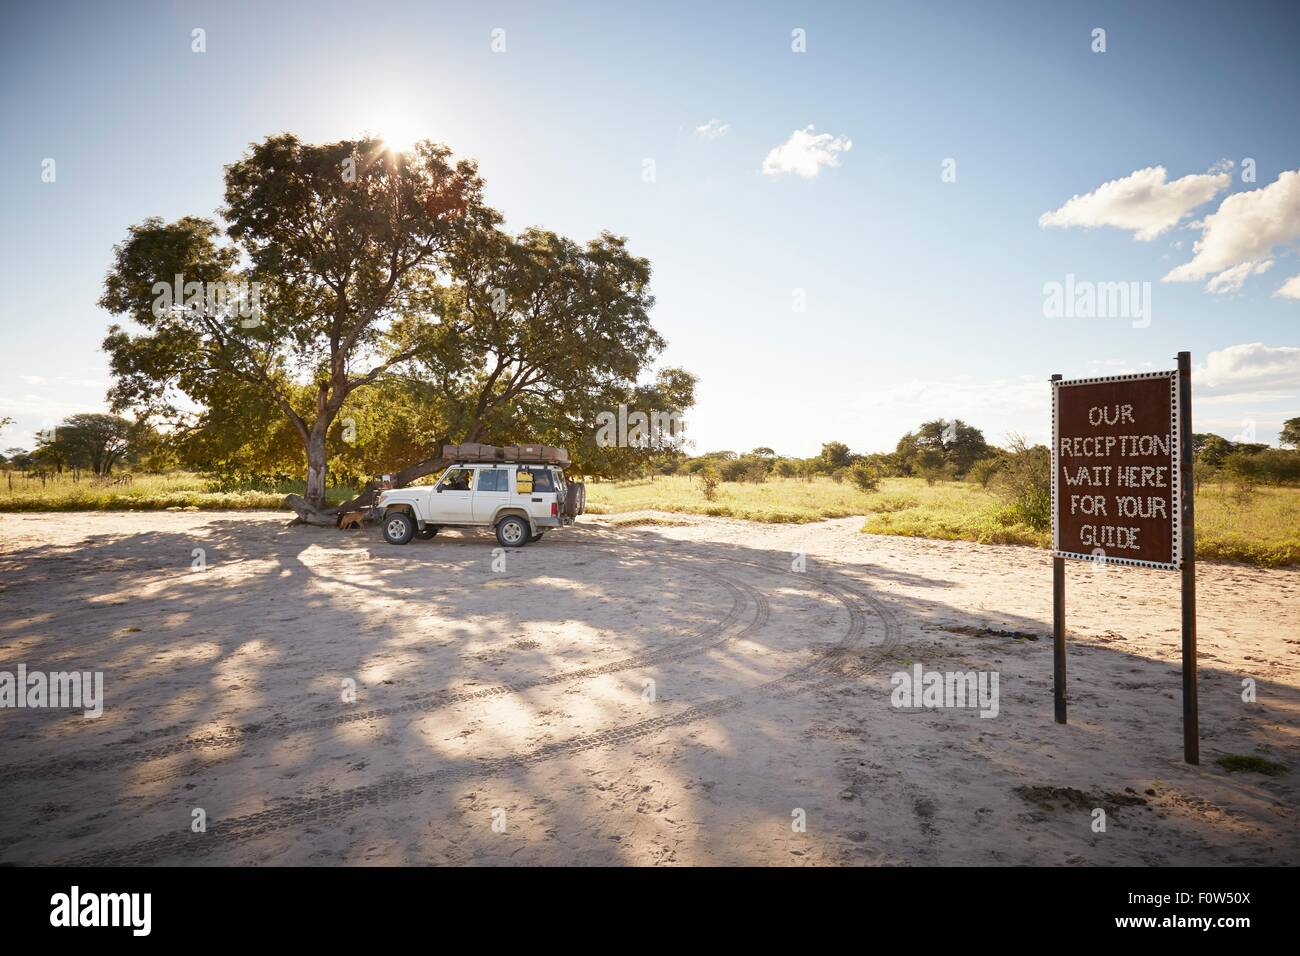 Off road vehicle parked by tourist point, Grootfontein, Kavango, Namibia - Stock Image